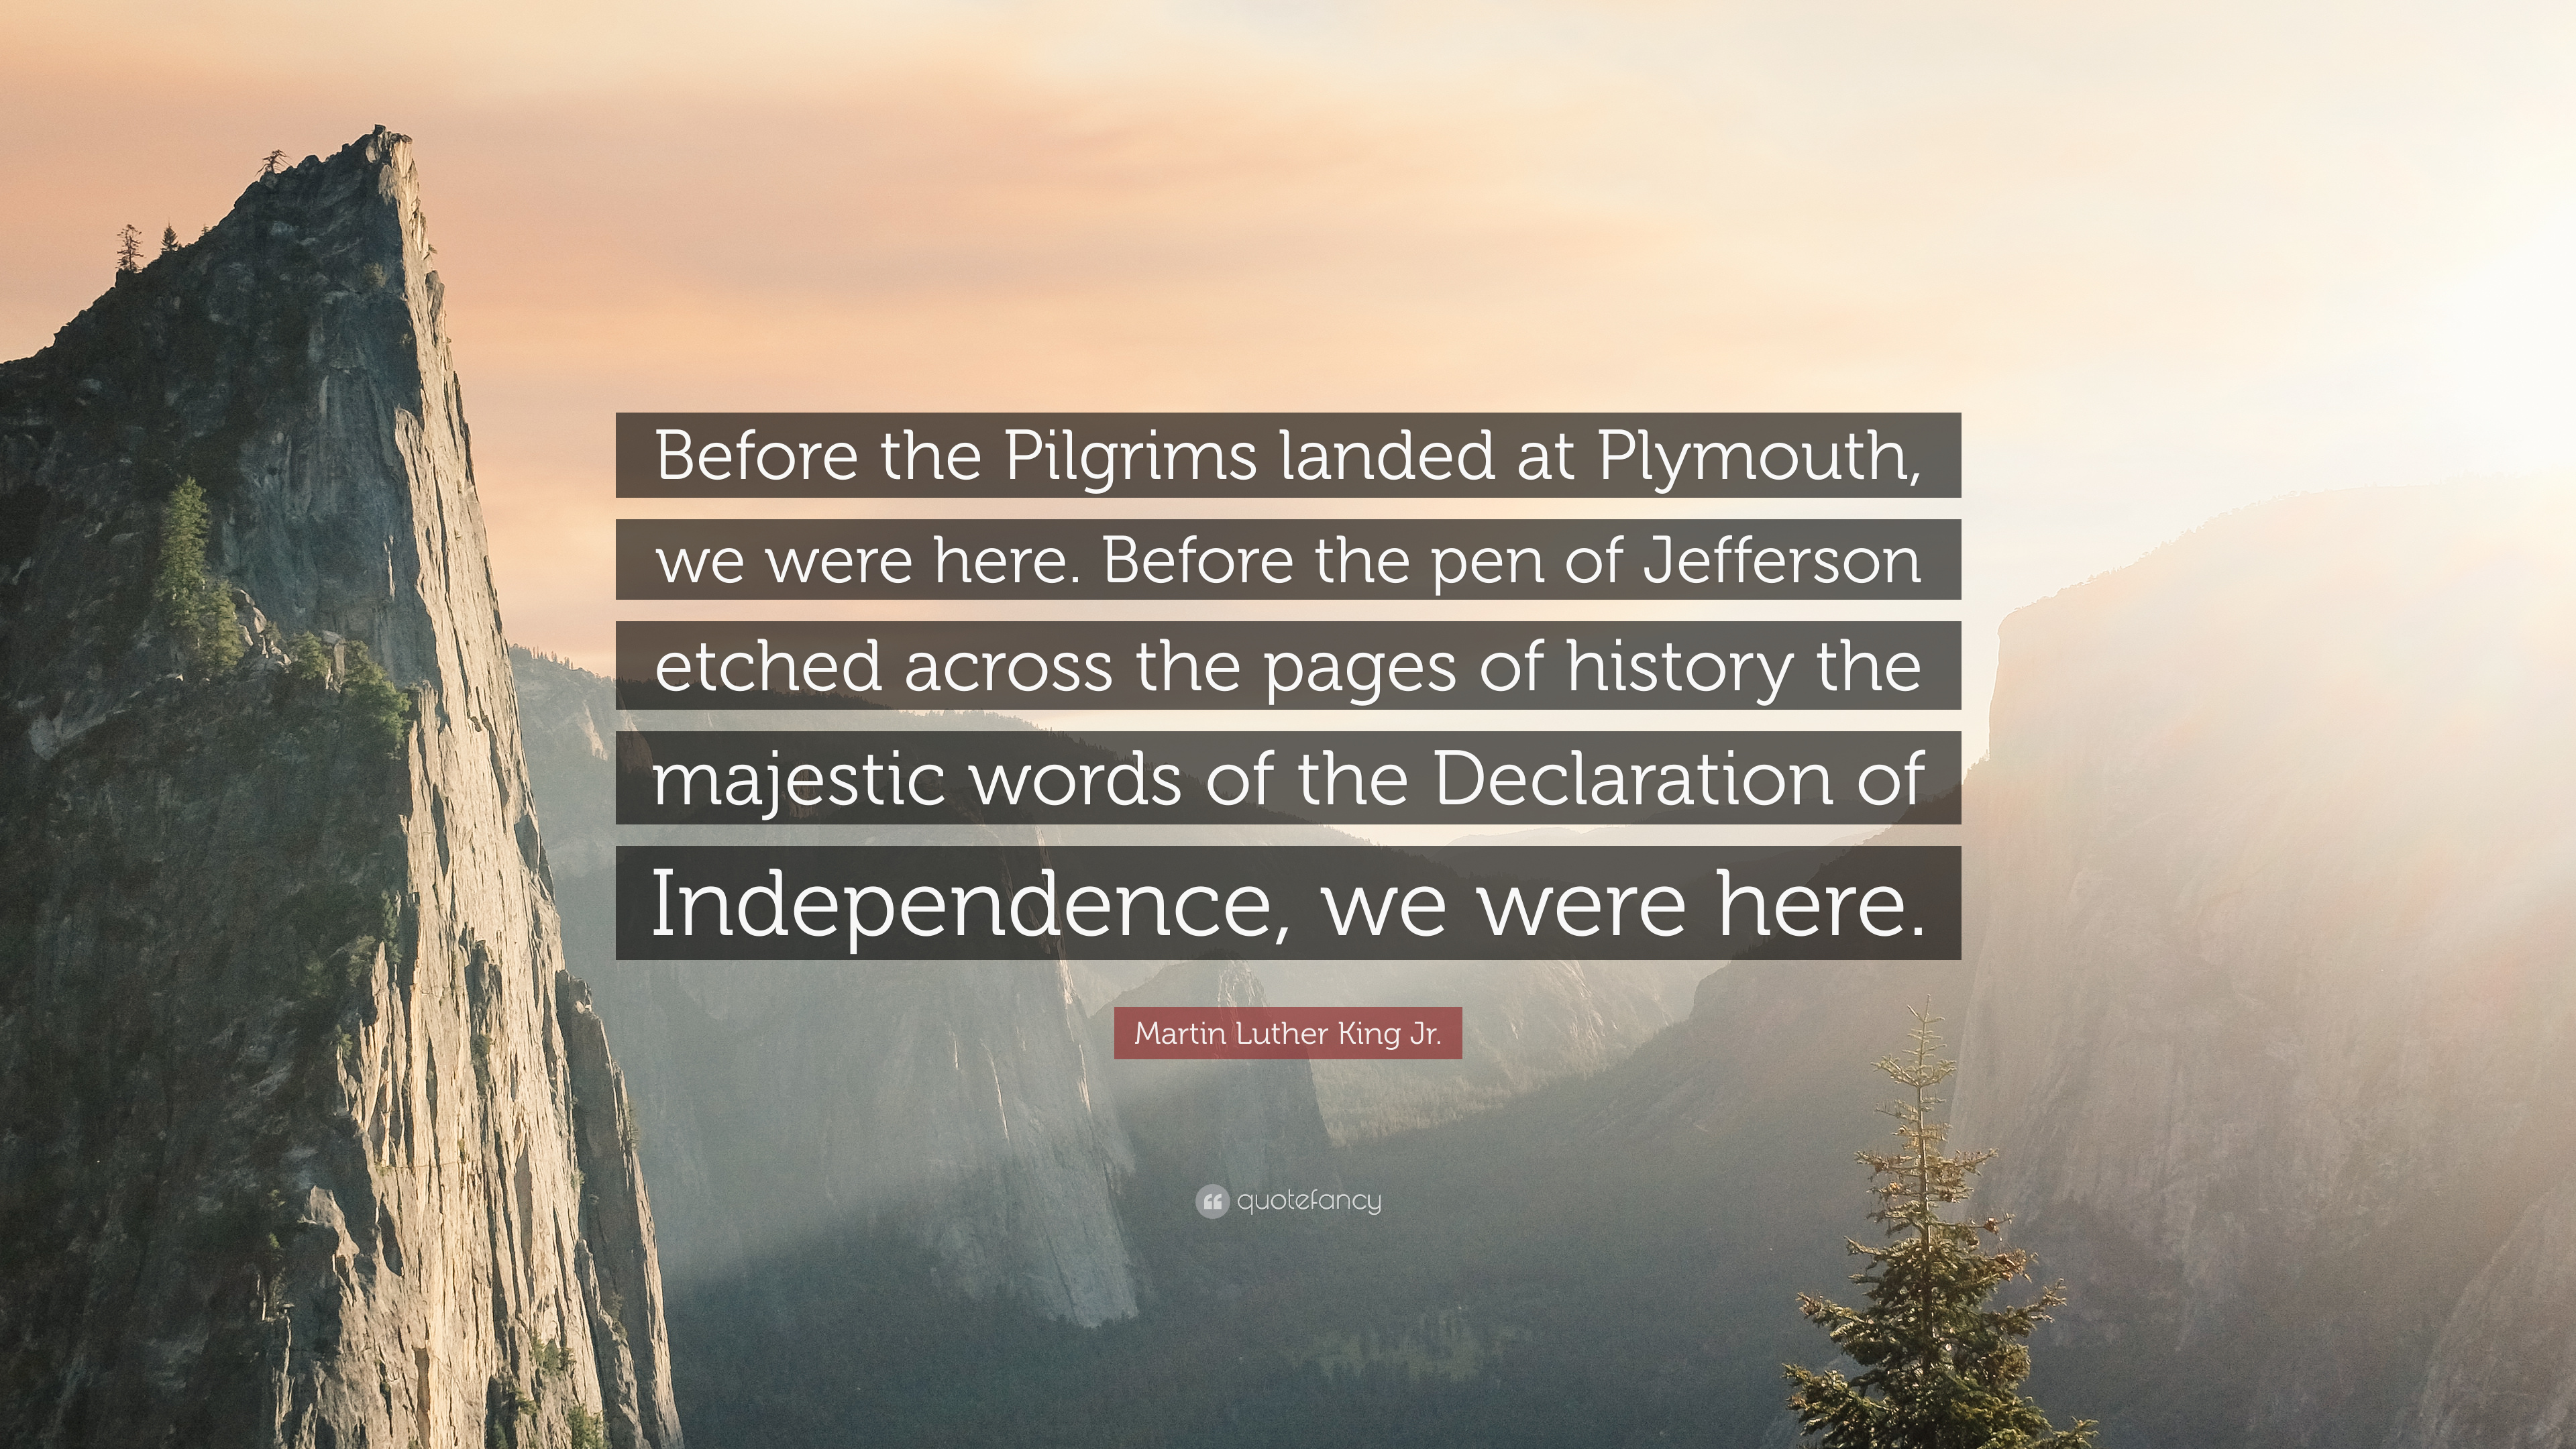 martin luther king jr quote before the pilgrims landed at